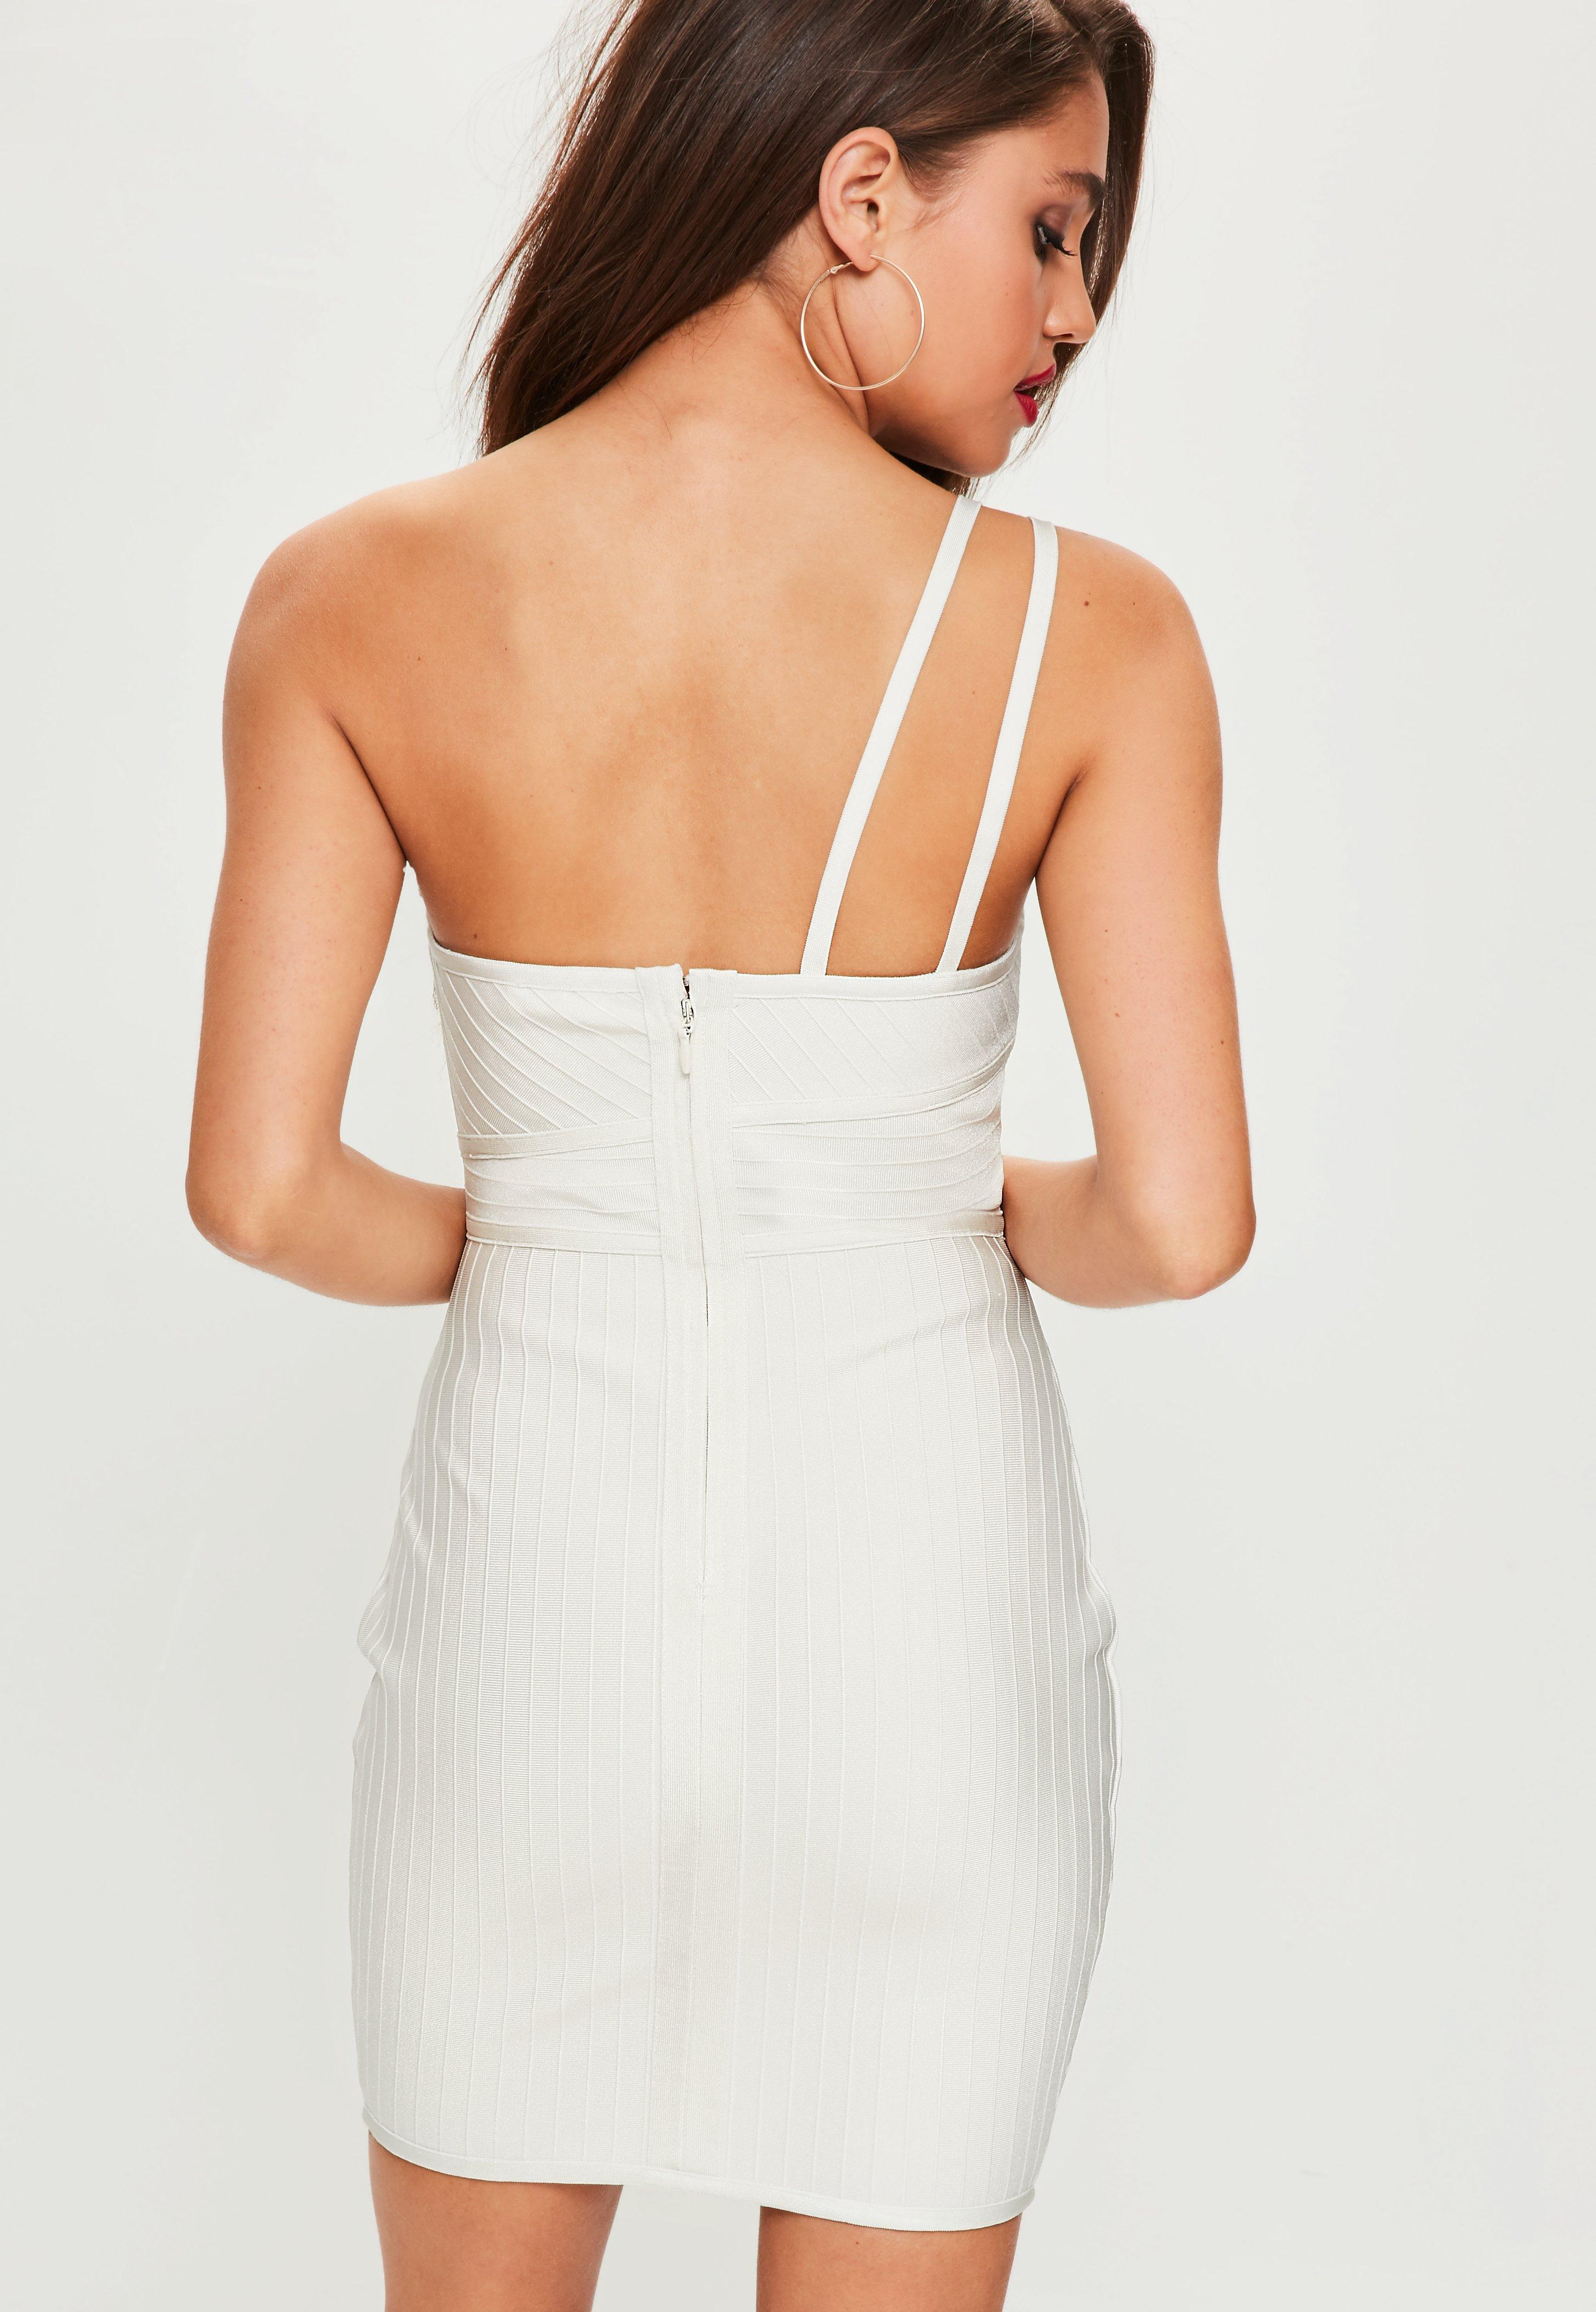 7c089d1dfdf1 Missguided White One Shoulder Bandage Mini Dress in White - Lyst